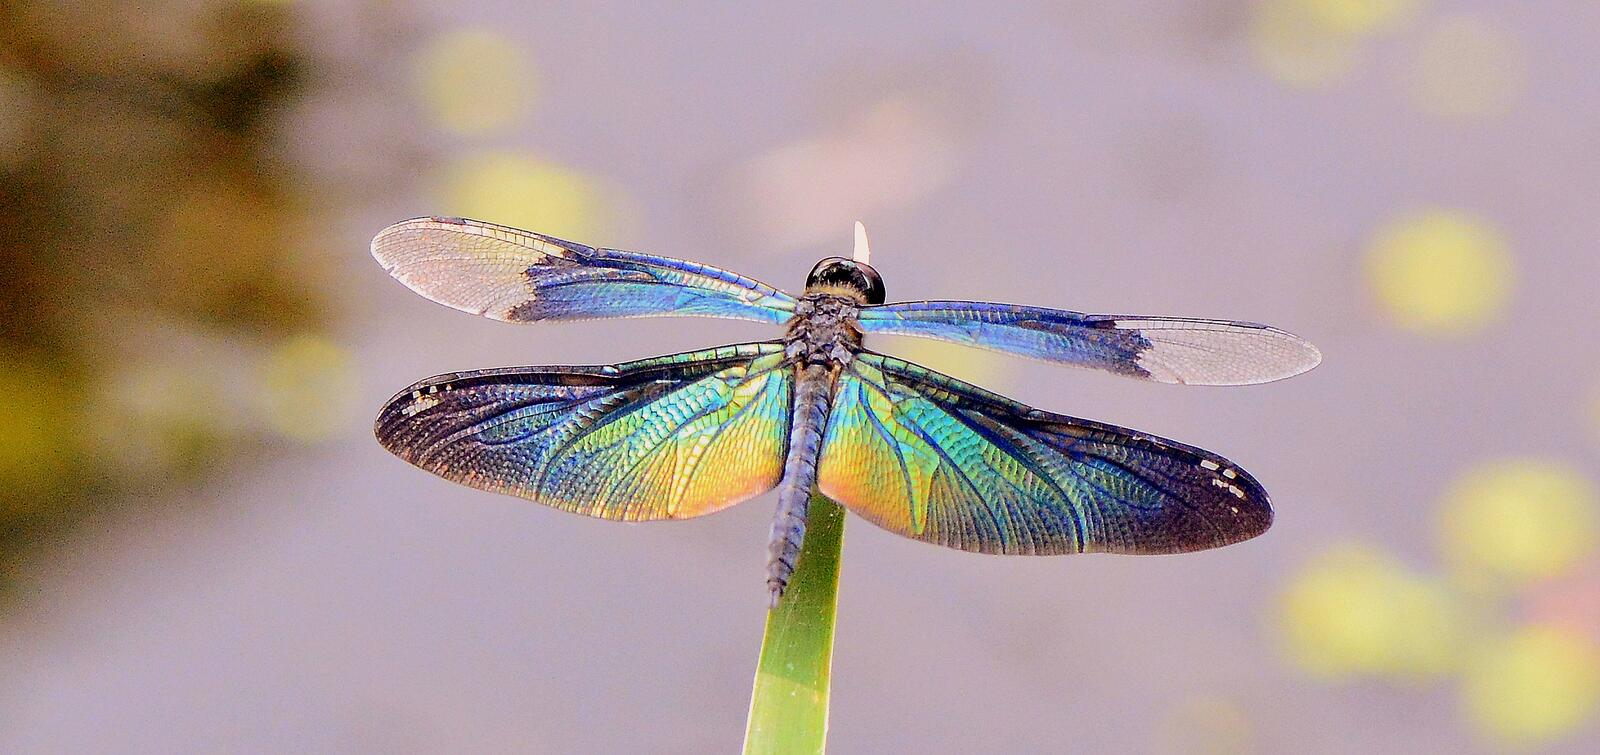 Download Dragon fly stock photo. Image of leaf, nature, close - 42434338